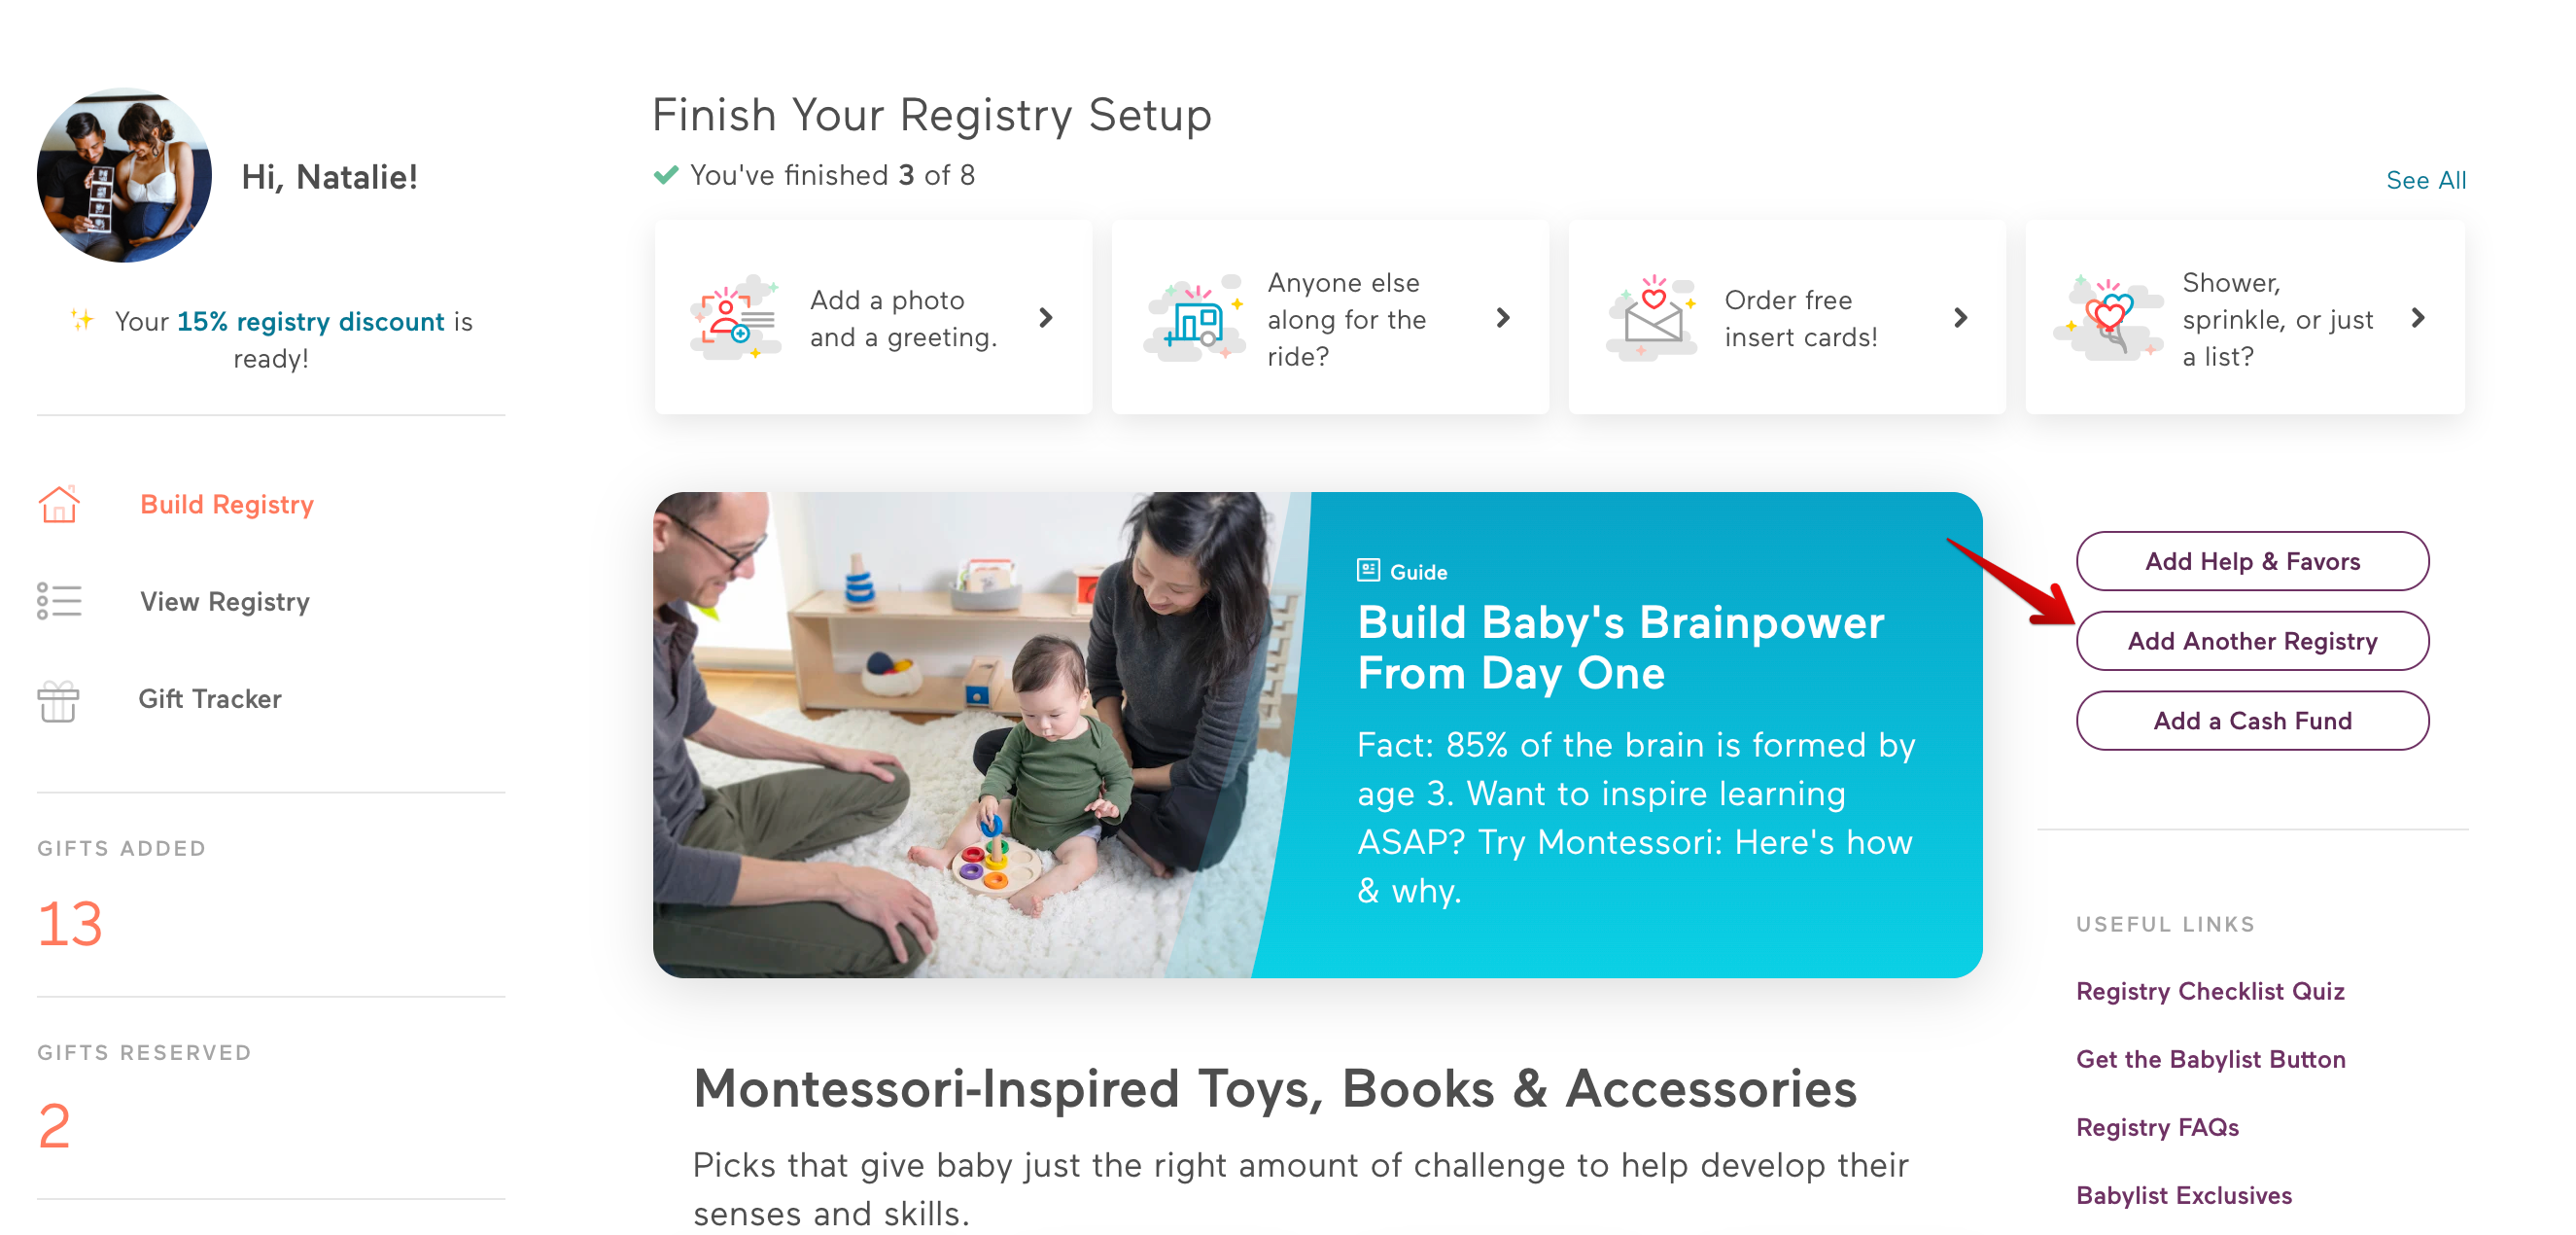 Can I copy another Babylist registry? - Babylist Help Center